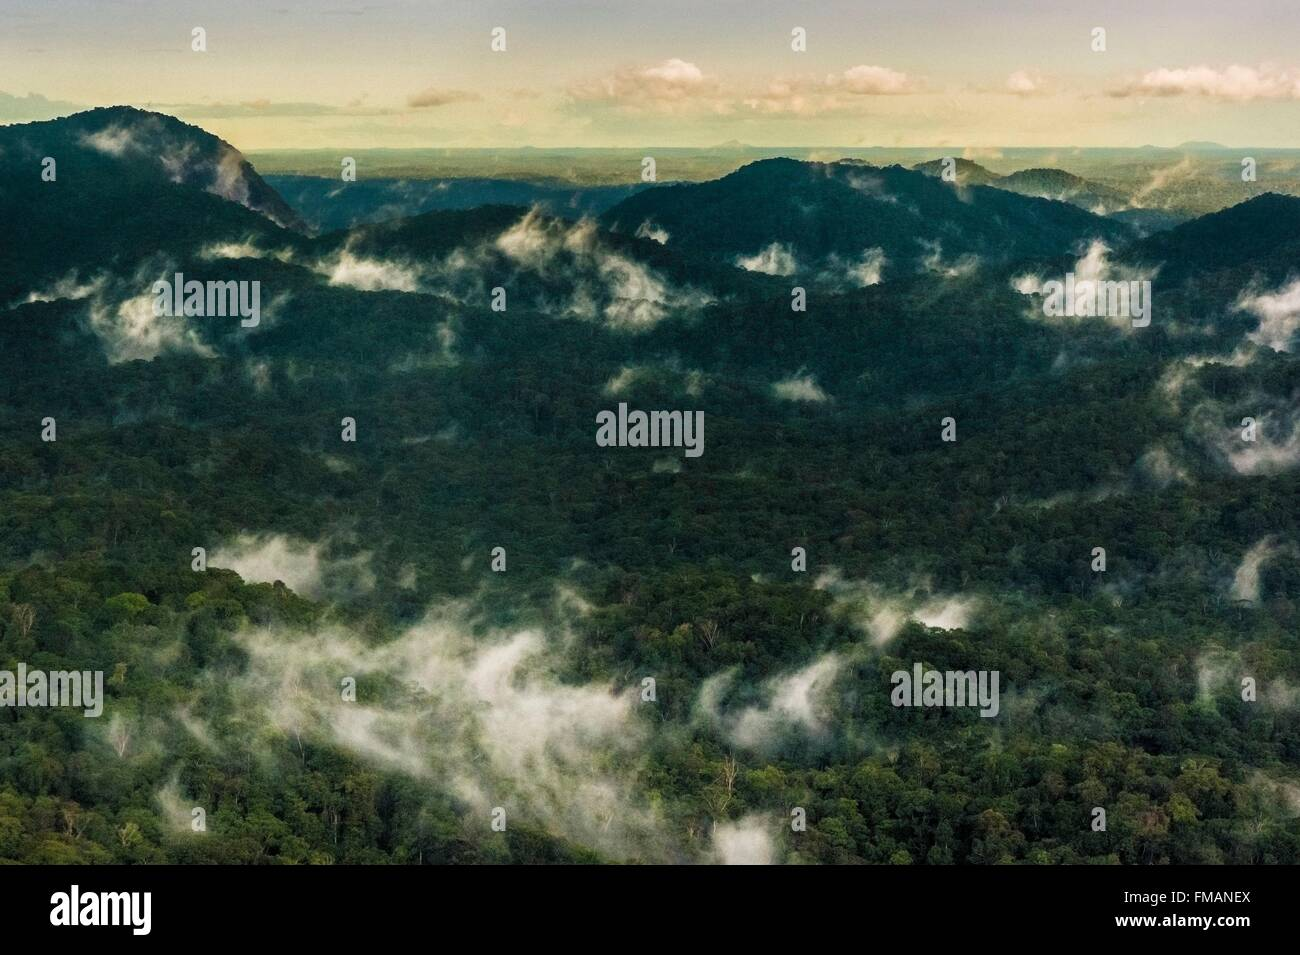 France, Guyana, French Guyana Amazonian Park, heart area, the evening mists in the Amazon rainforest - Stock Image